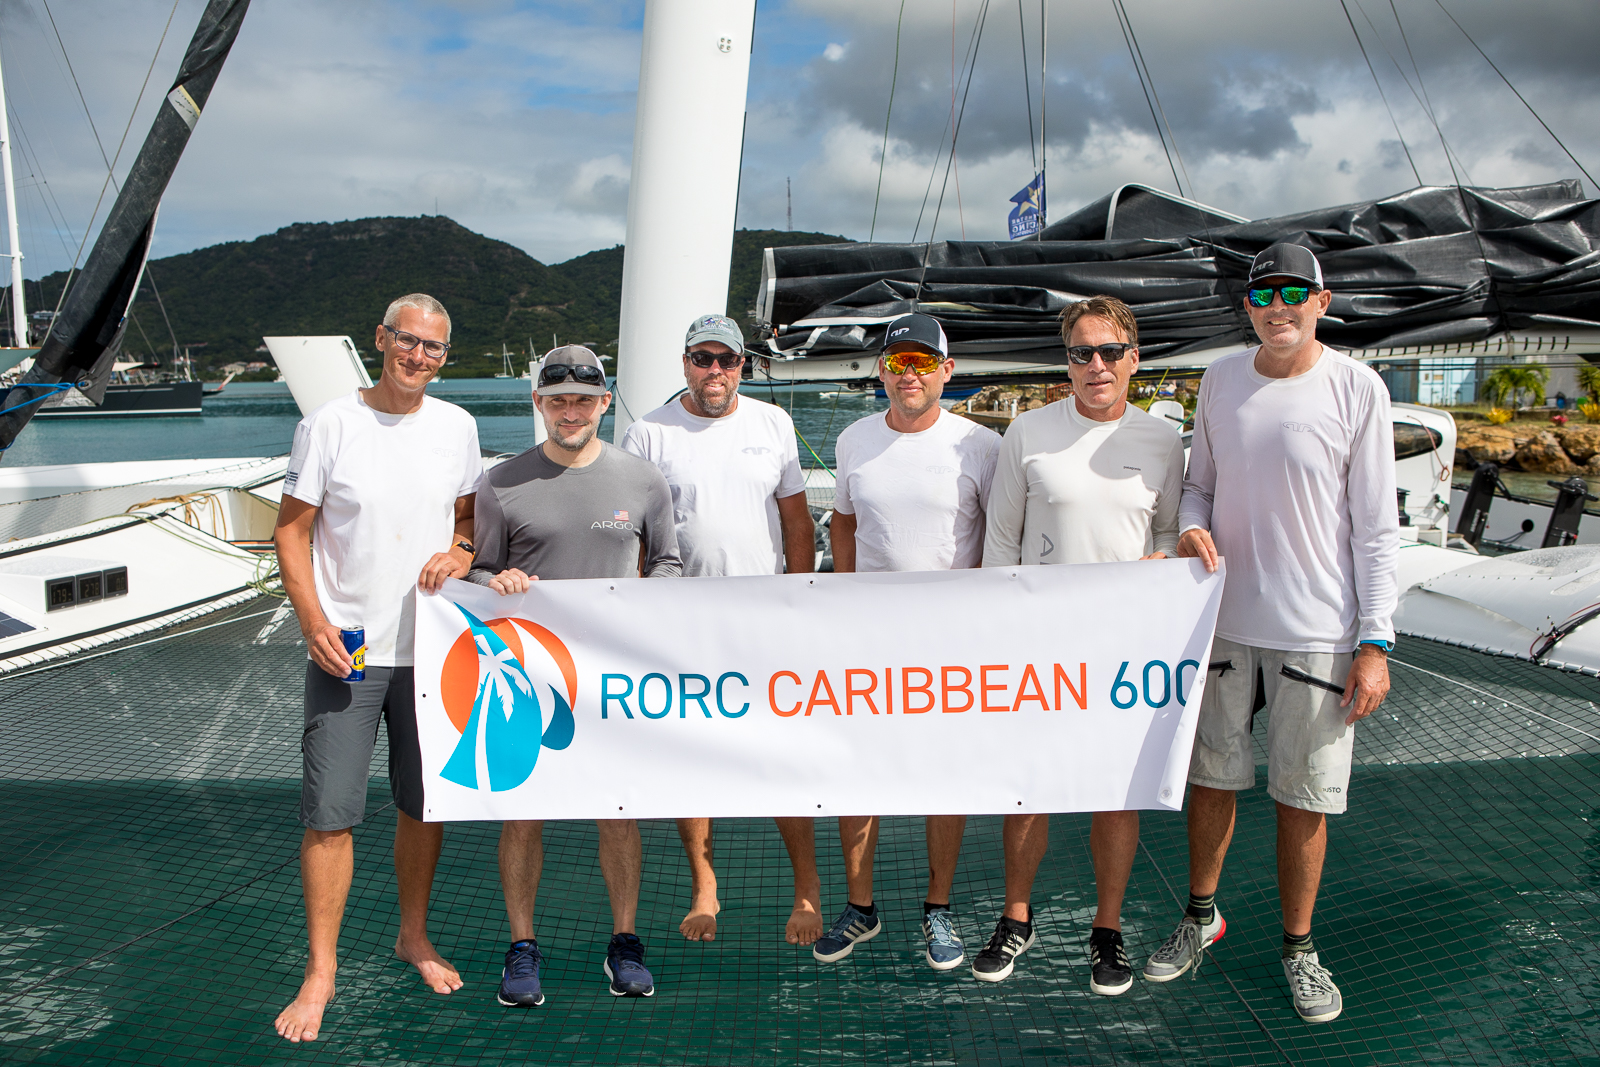 Team Argo for the RORC Caribbean 600: Franck Cammas (not in photo), Jason Carroll, Charles Corning, Thierry Fouchier, Artie Means, Alister Richardson, Brian Thompson © Arthur Daniel/RORC